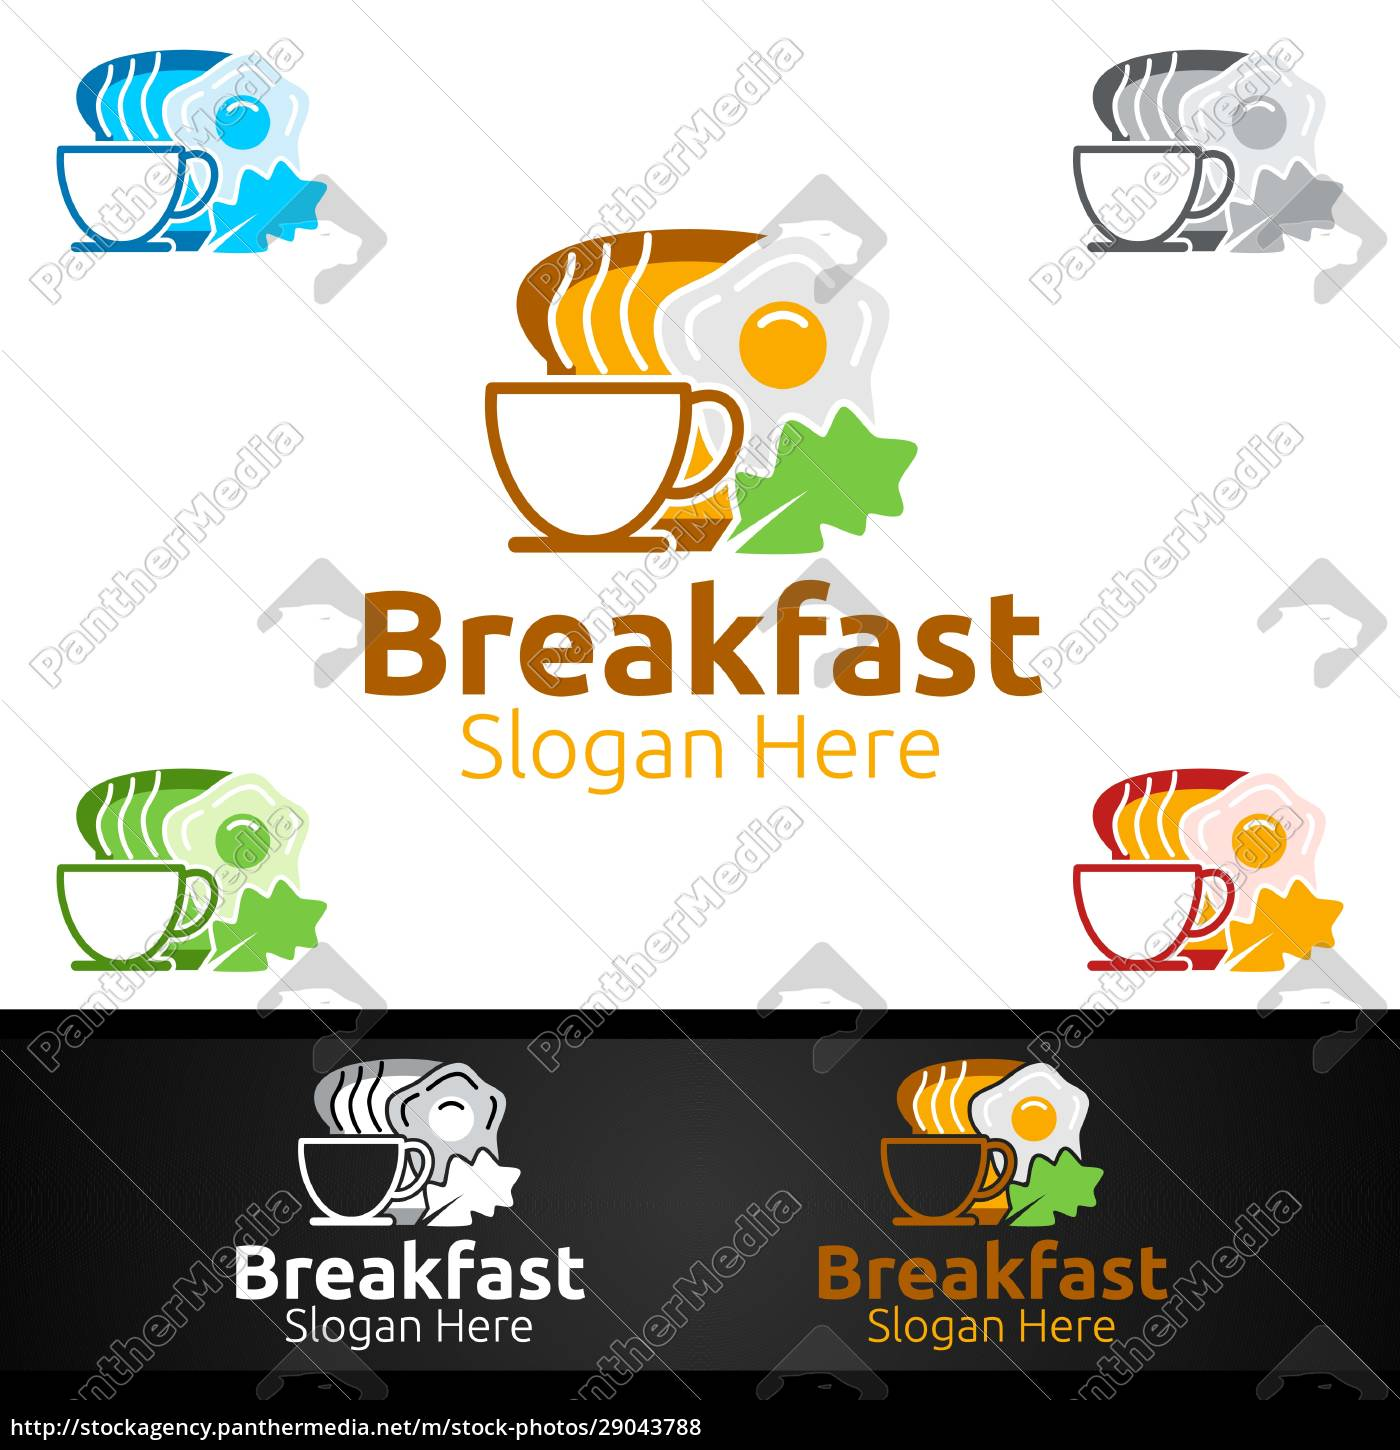 fast, food, breakfast, delivery, service, logo - 29043788